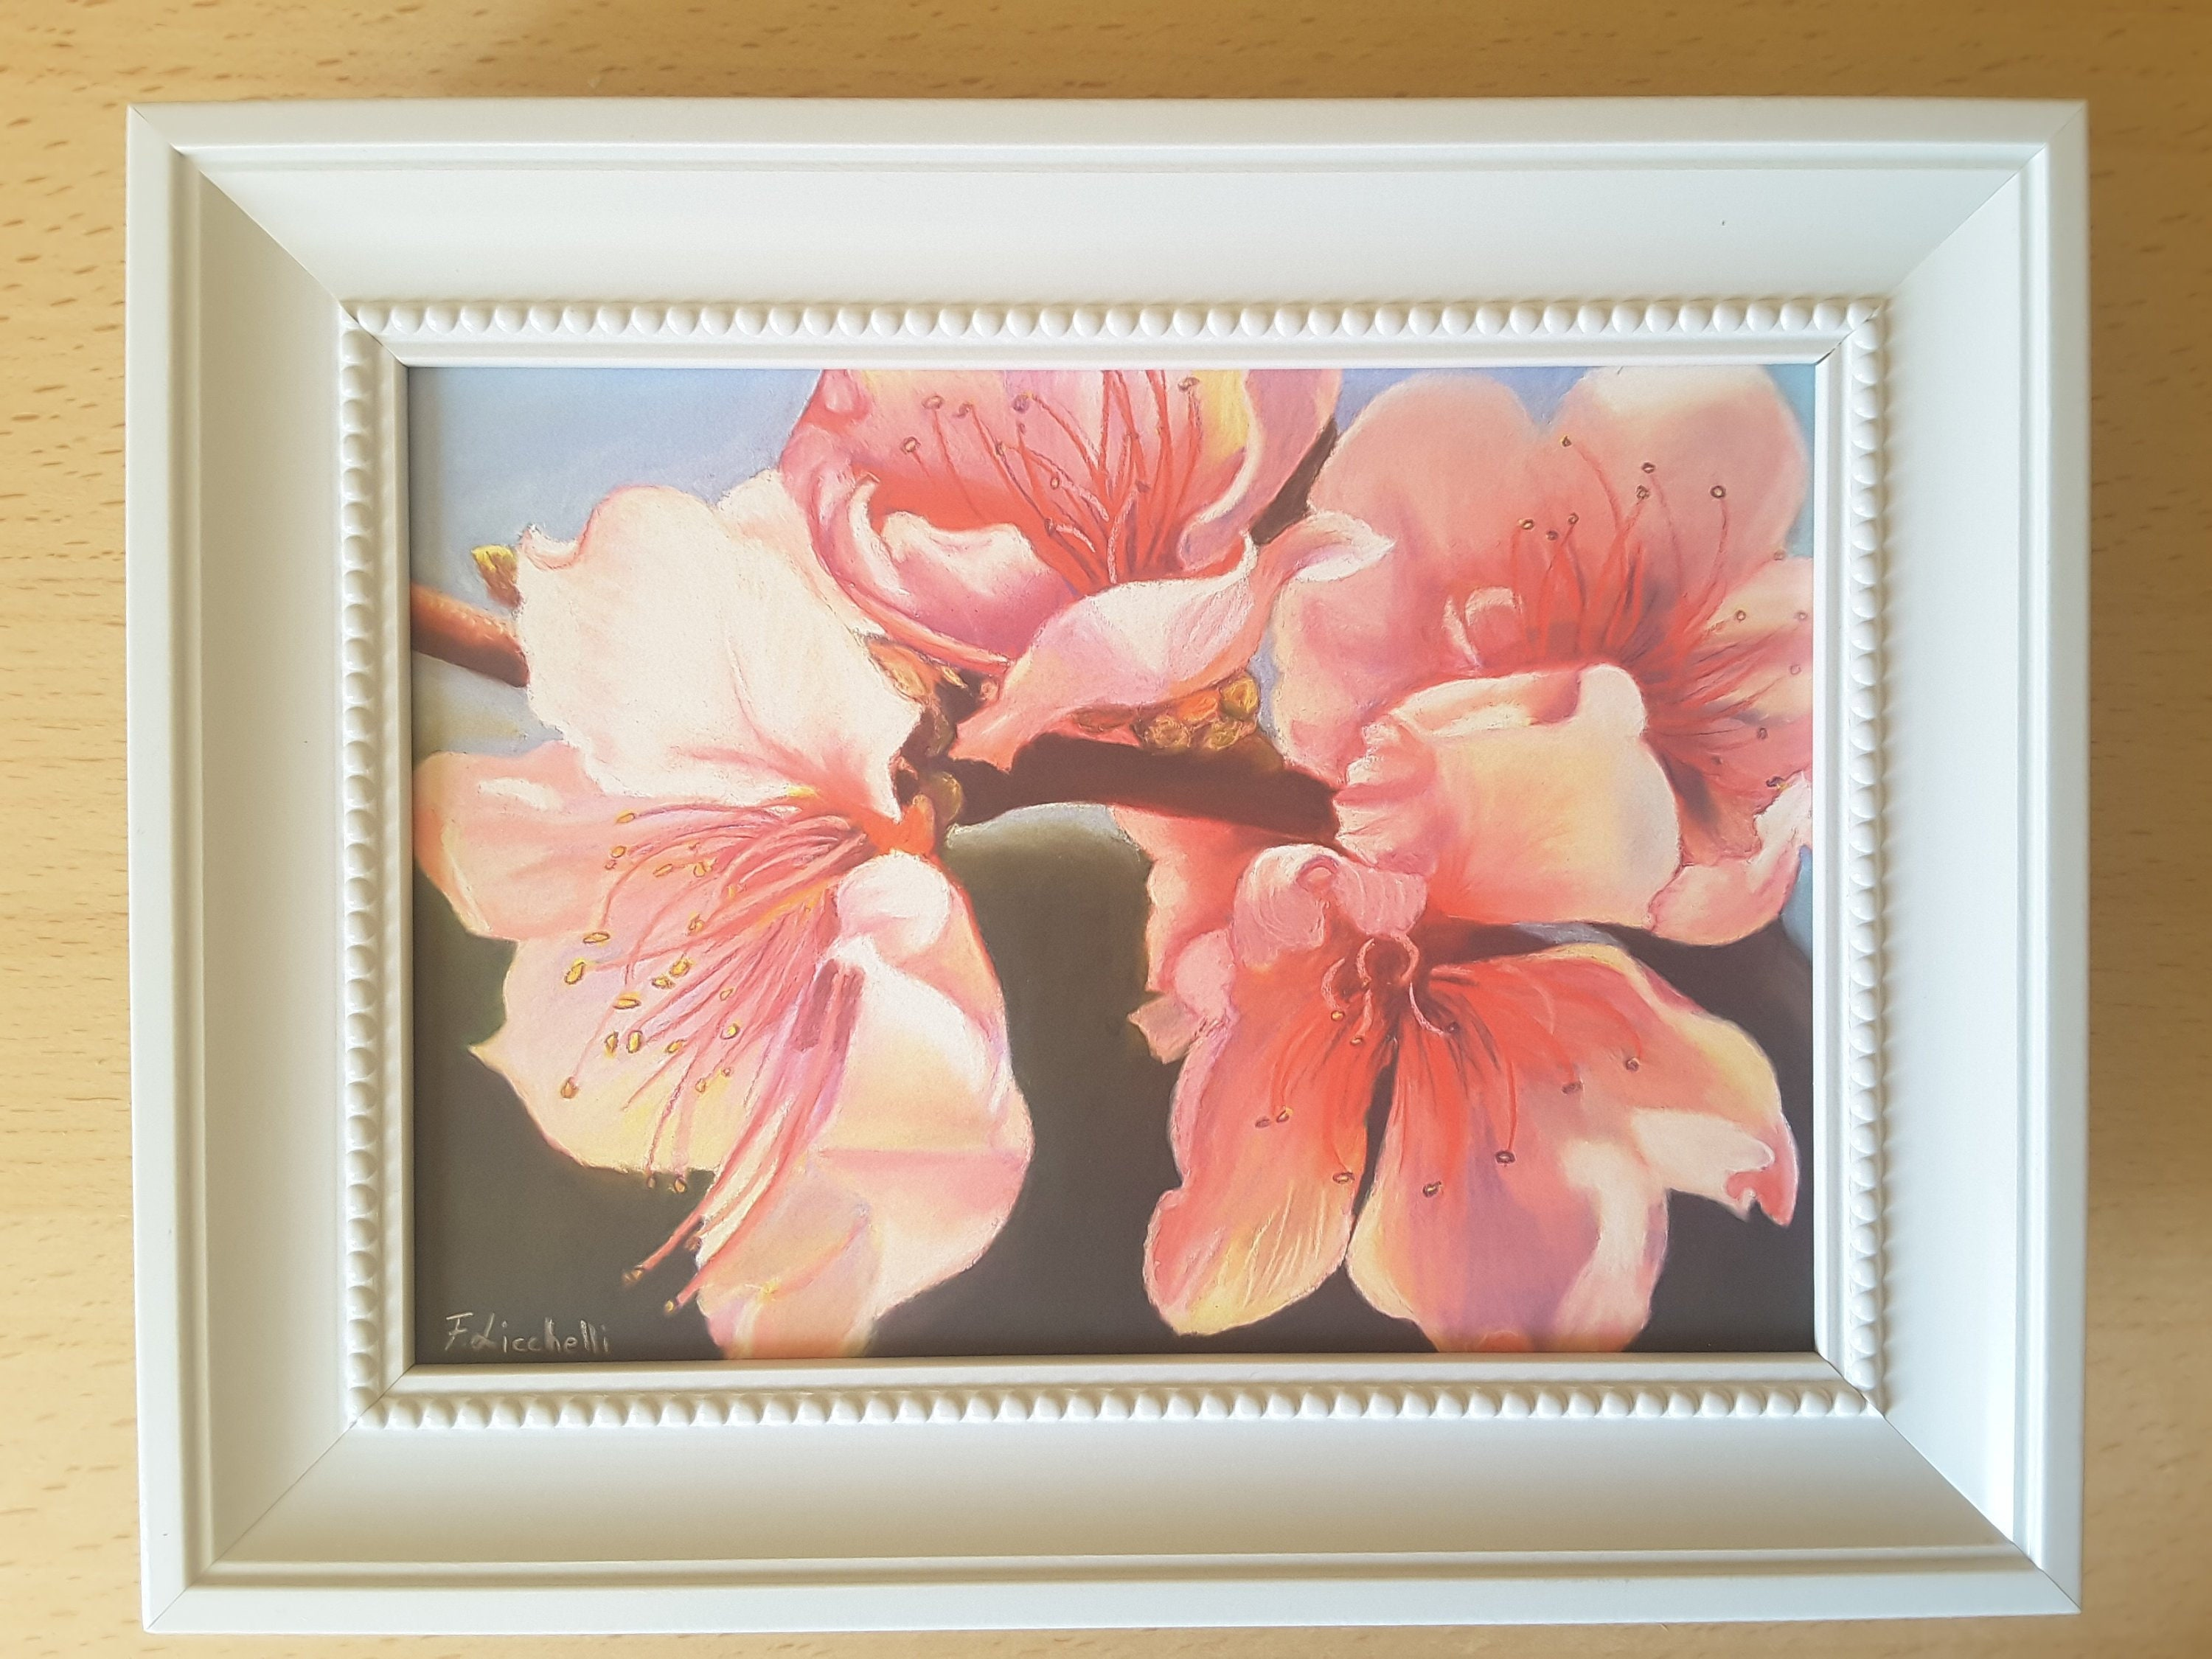 Floral Painting With Frame Shabby Chic Style Romantic Gift Idea